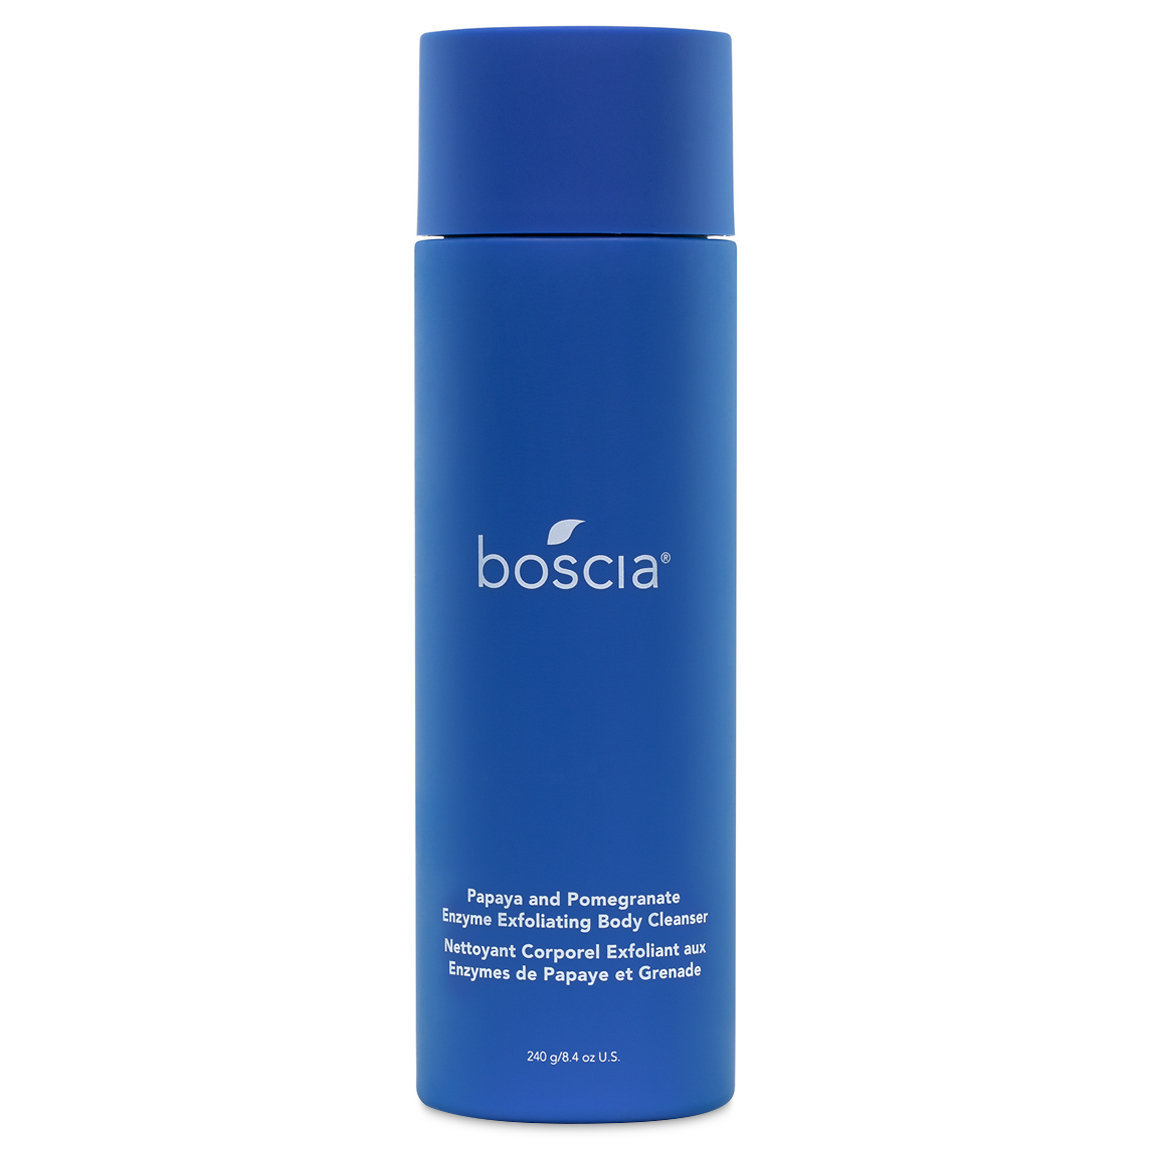 boscia Papaya and Pomegranate Enzyme Exfoliating Body Cleanser alternative view 1 - product swatch.